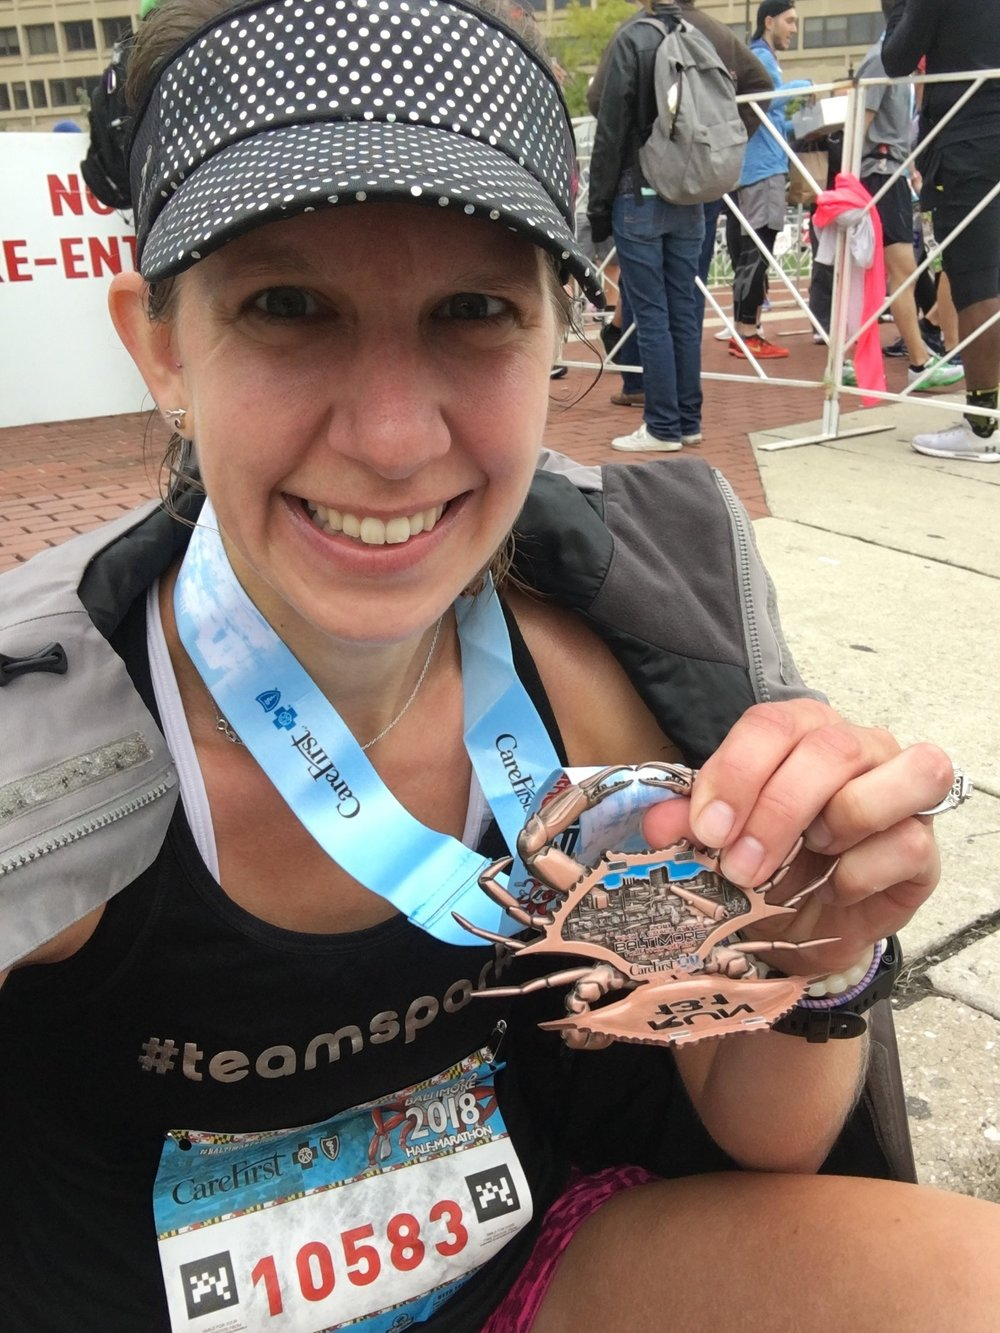 Sitting down felt amazing! Plus the medal is pretty cool. The crab opens up to show a skyline of Baltimore.